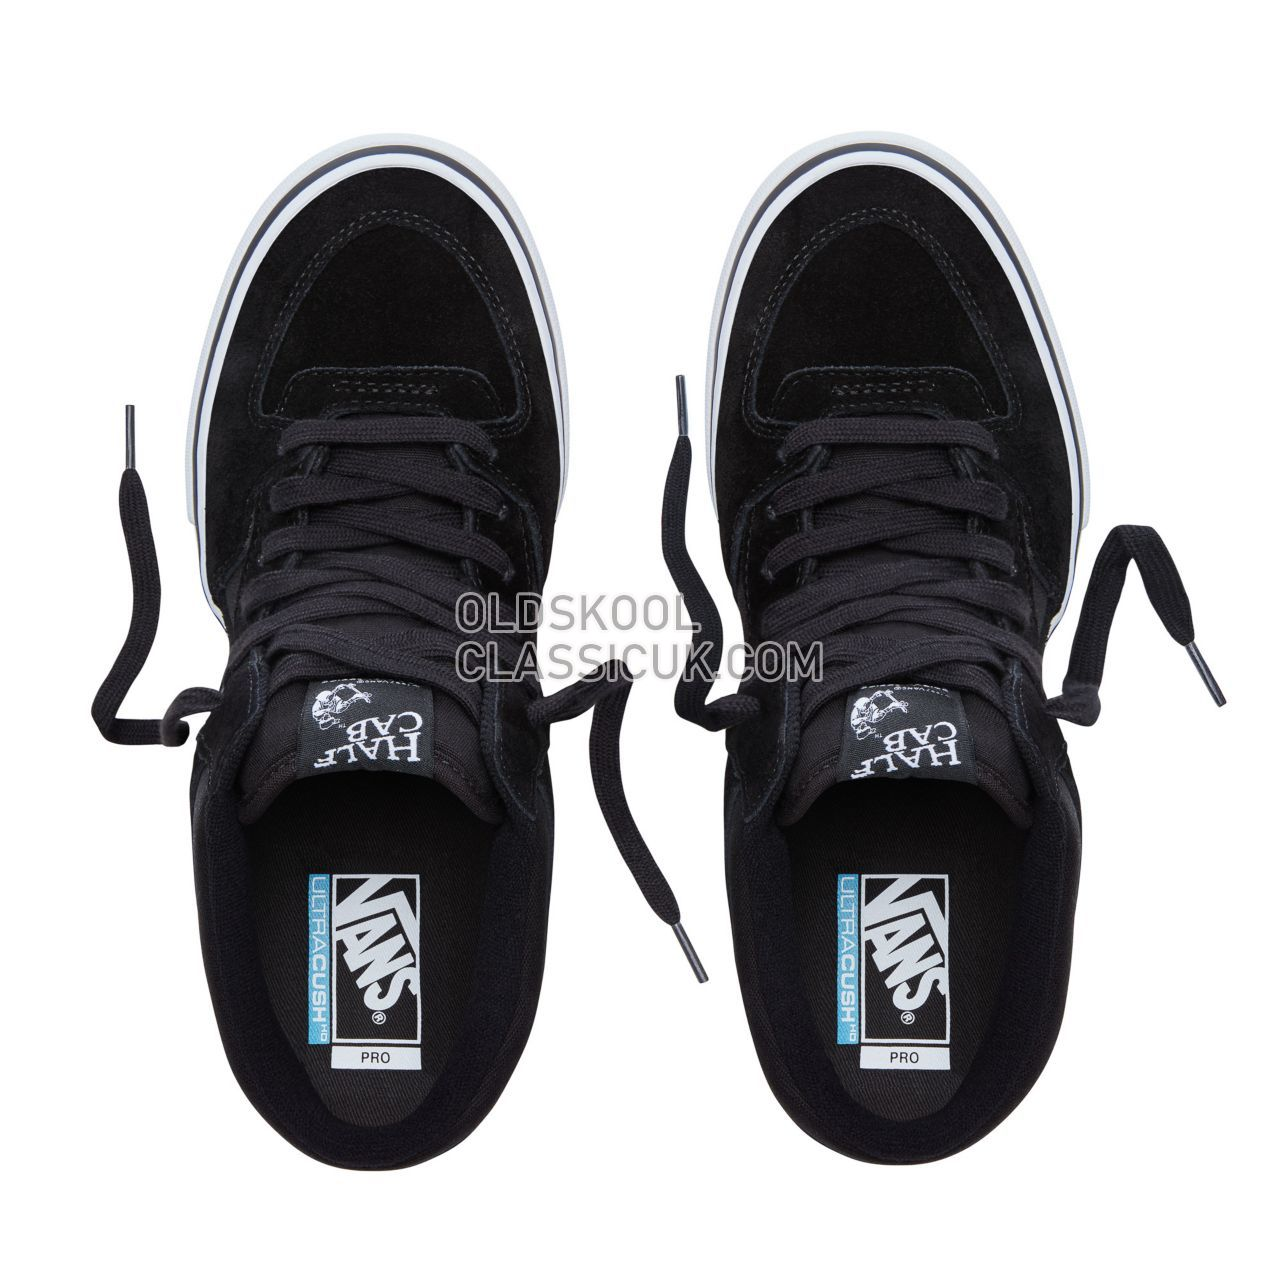 Vans Half Cab Pro Sneakers Mens Black/White VN0A38CPB8C Shoes